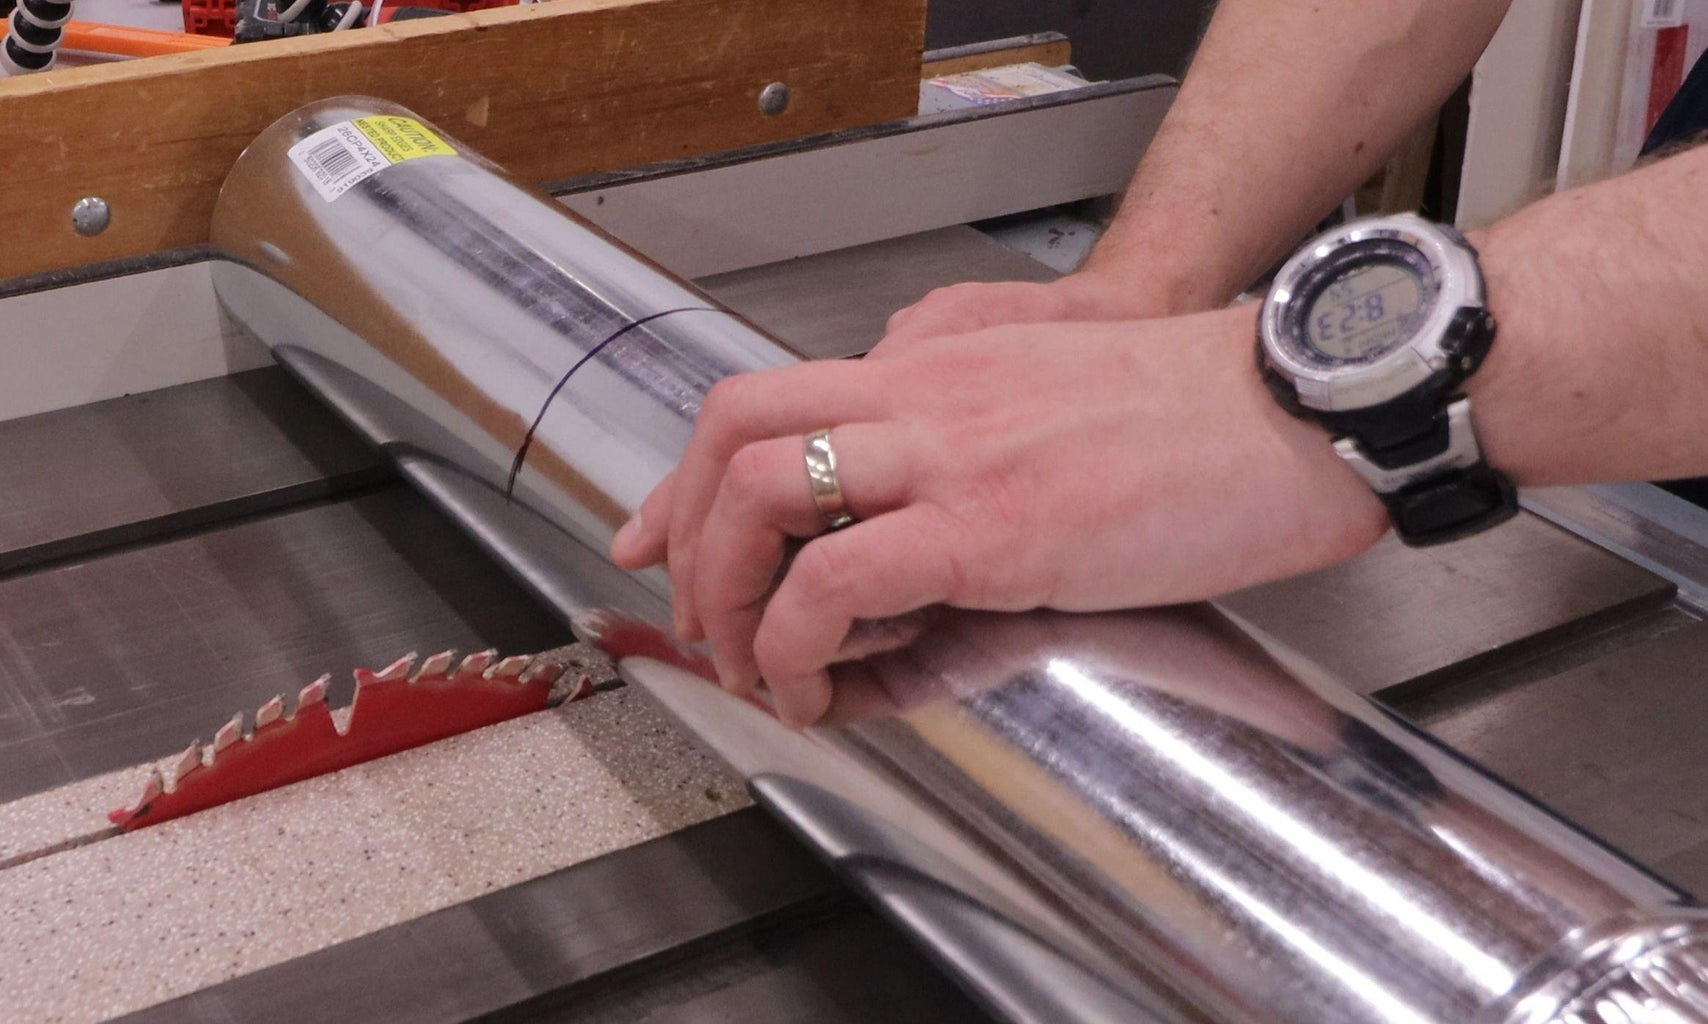 Measure Exit Duct and Cut